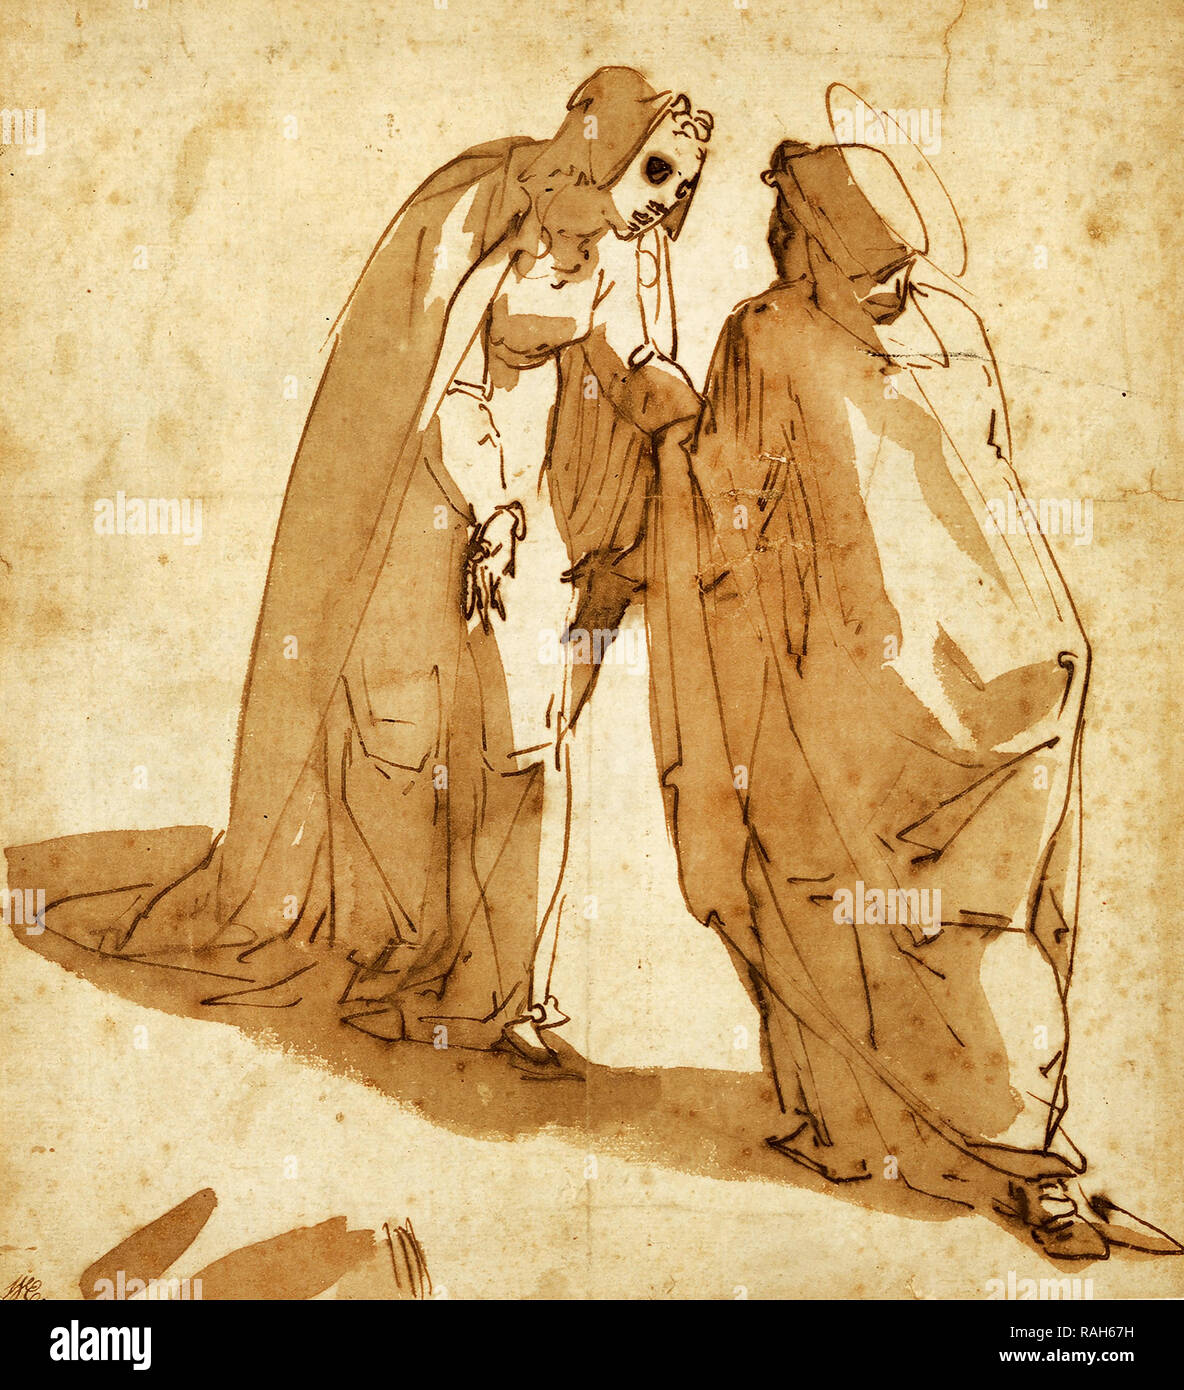 Luca Cambiaso, The Visitation, Circa 1580, Pen, brown ink on paper, Art Gallery of South Australia. - Stock Image